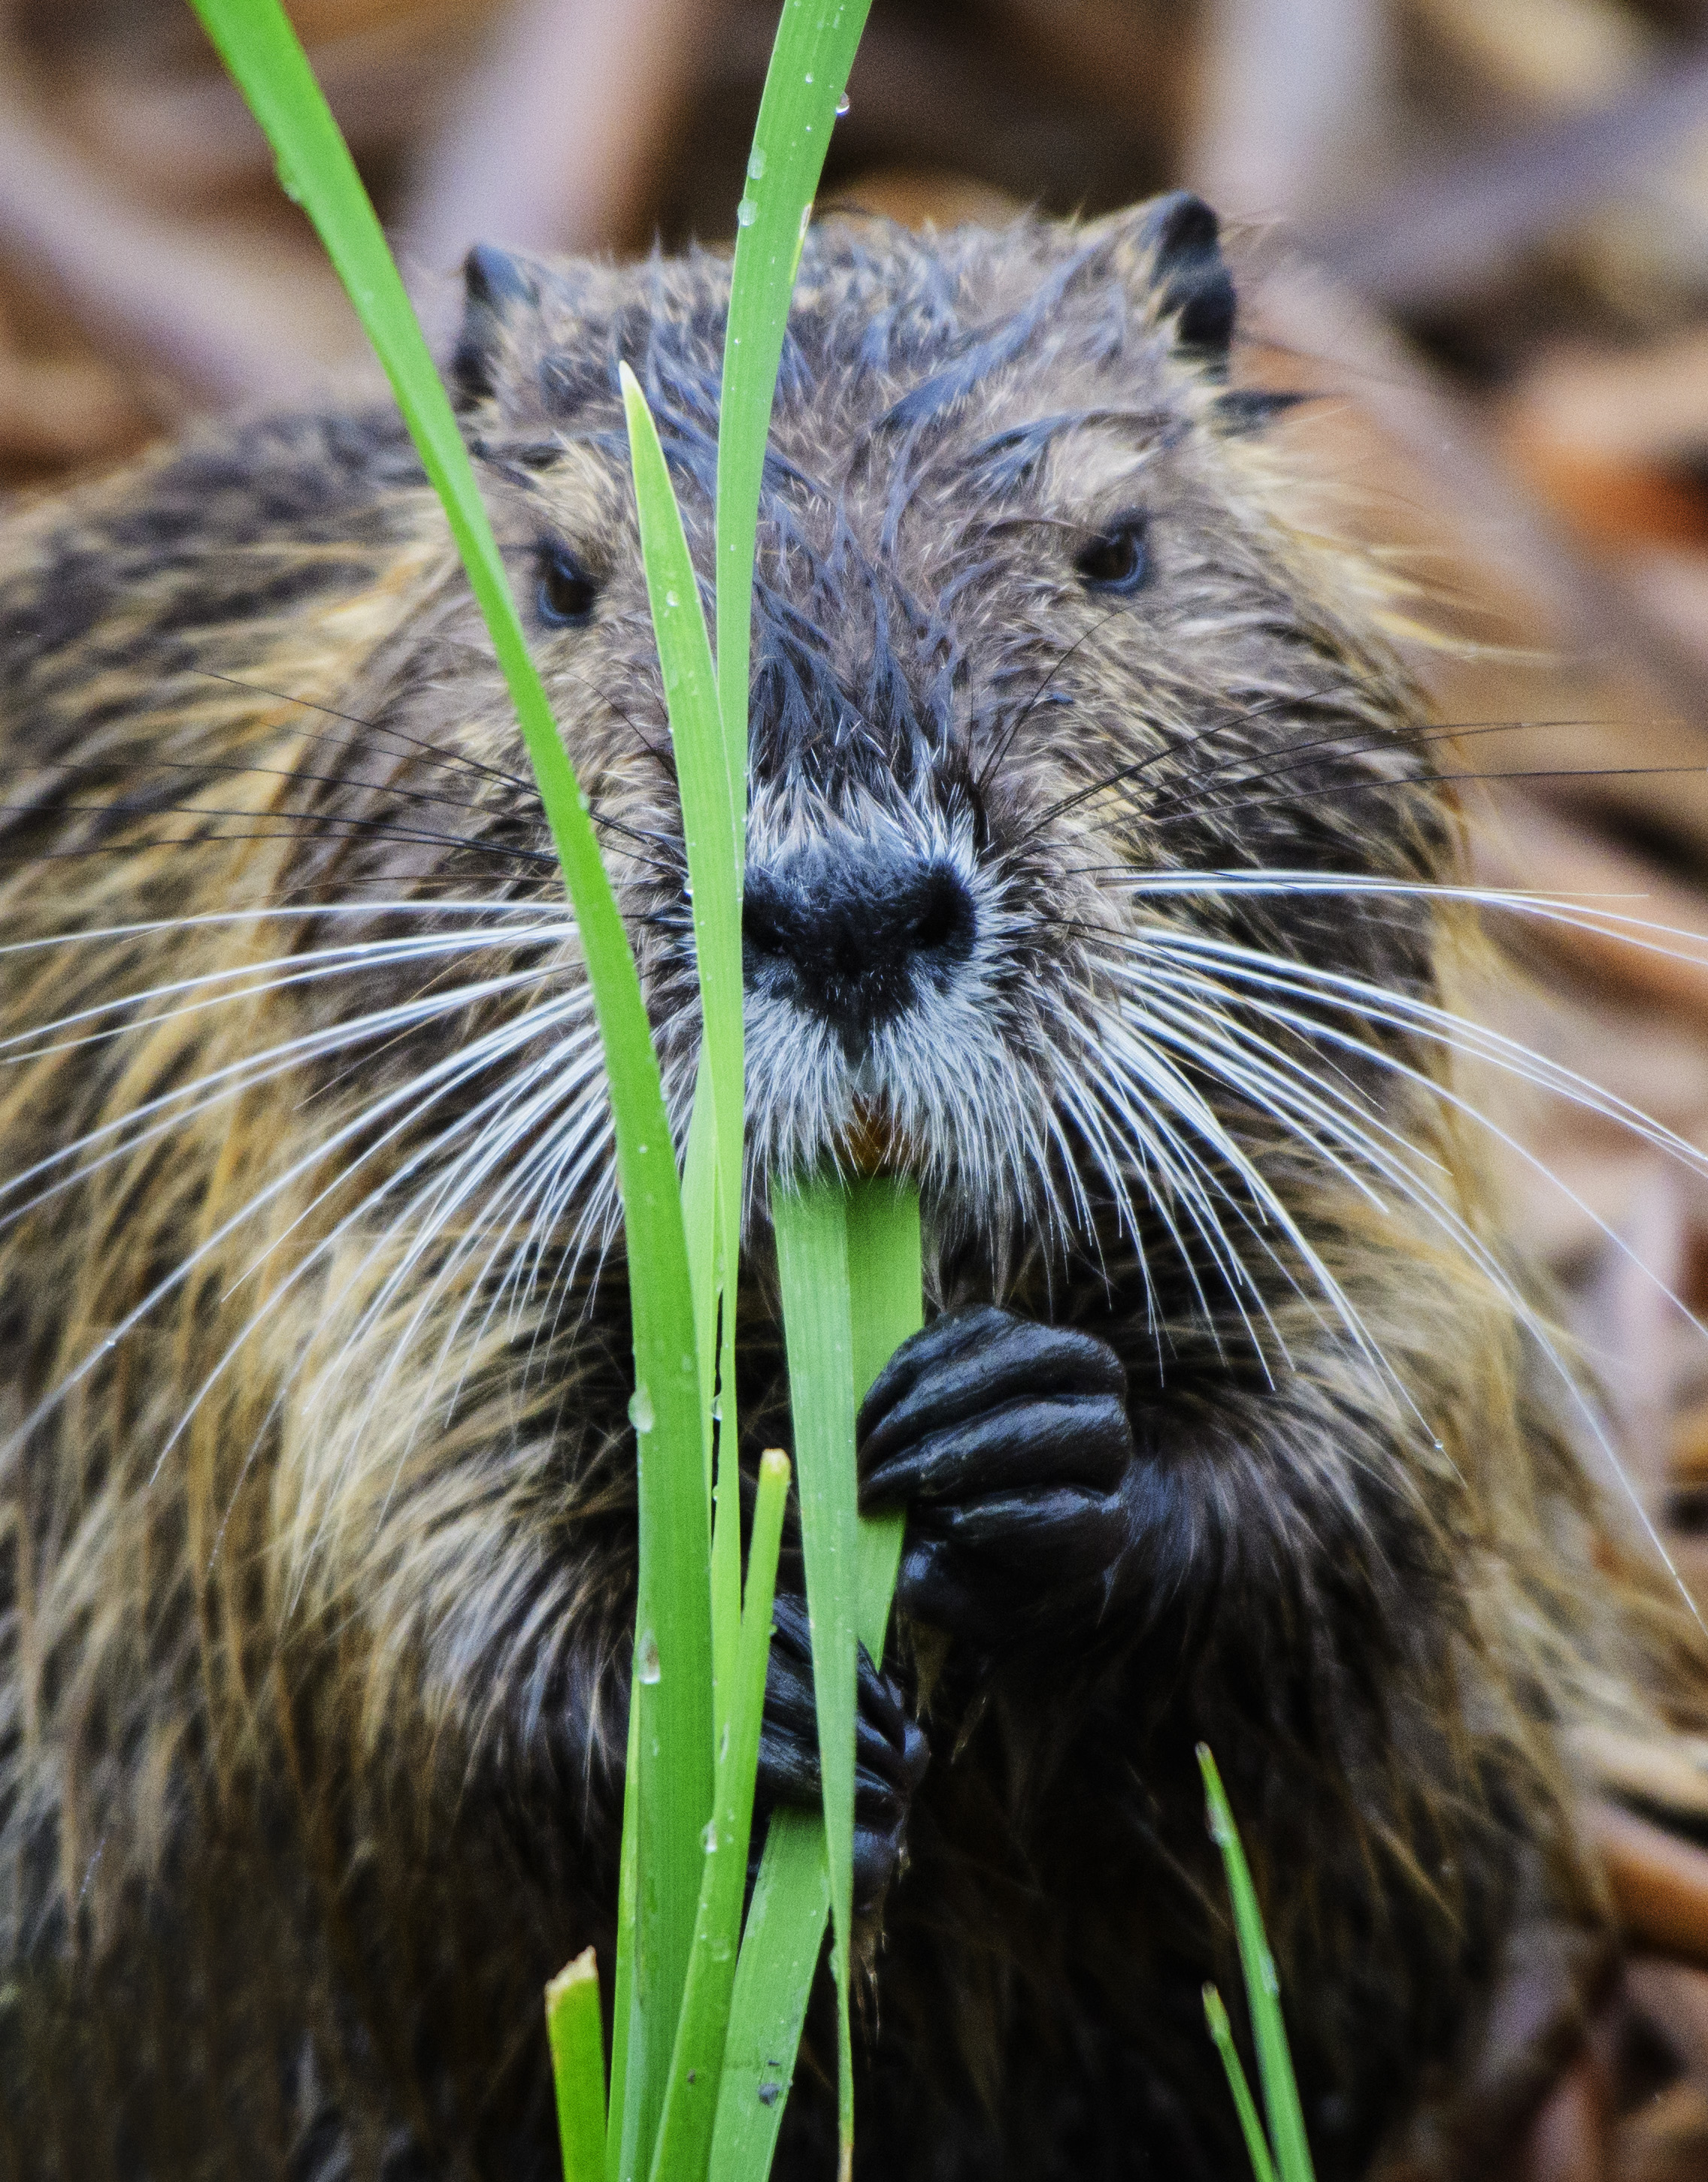 Running Wild! The Nutria Did Not Stay Captive for Long